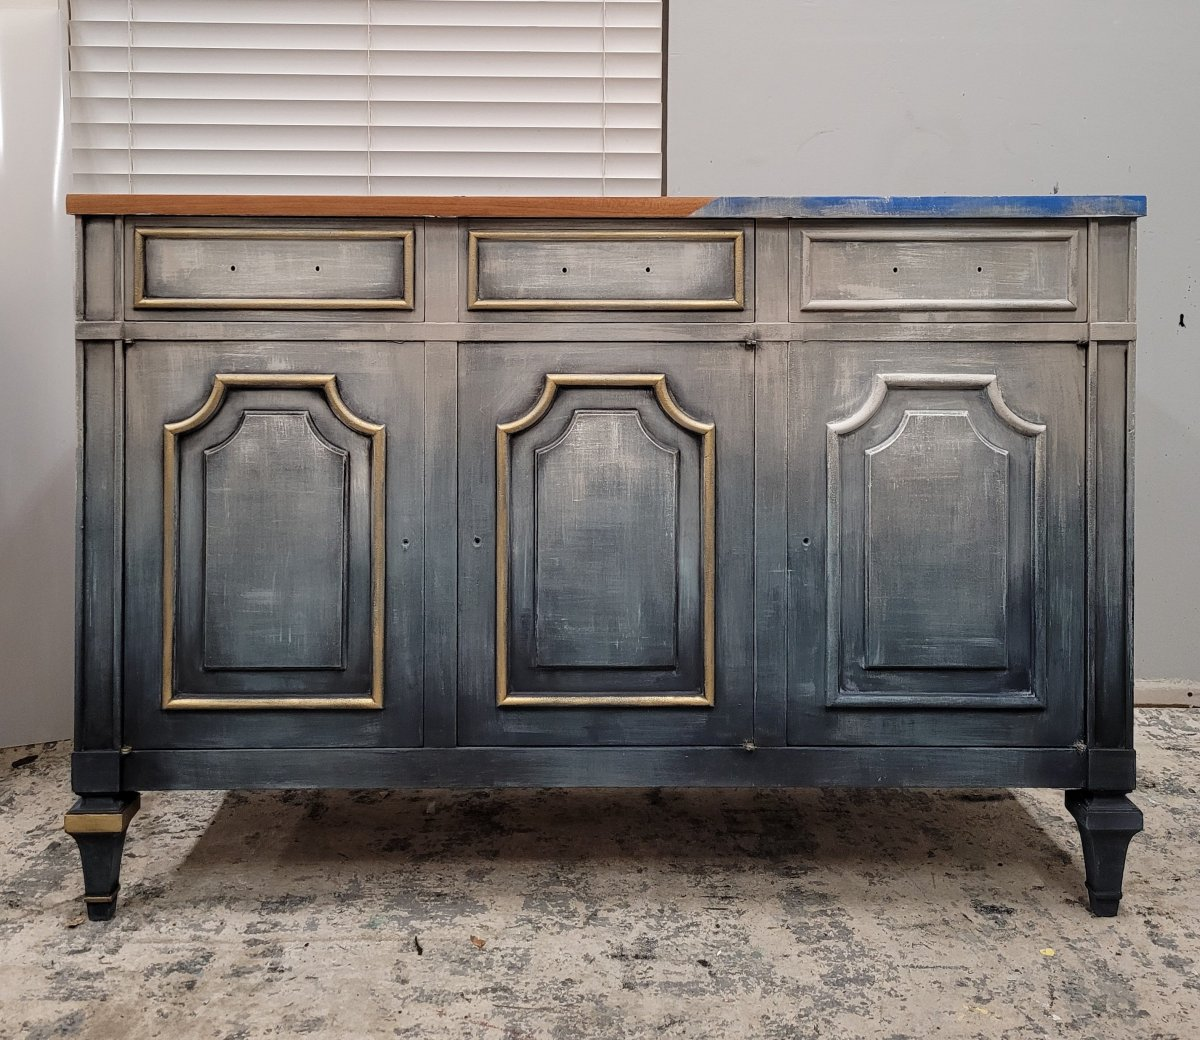 adding black and gold wax details to the faded blue jean painted furniture finish